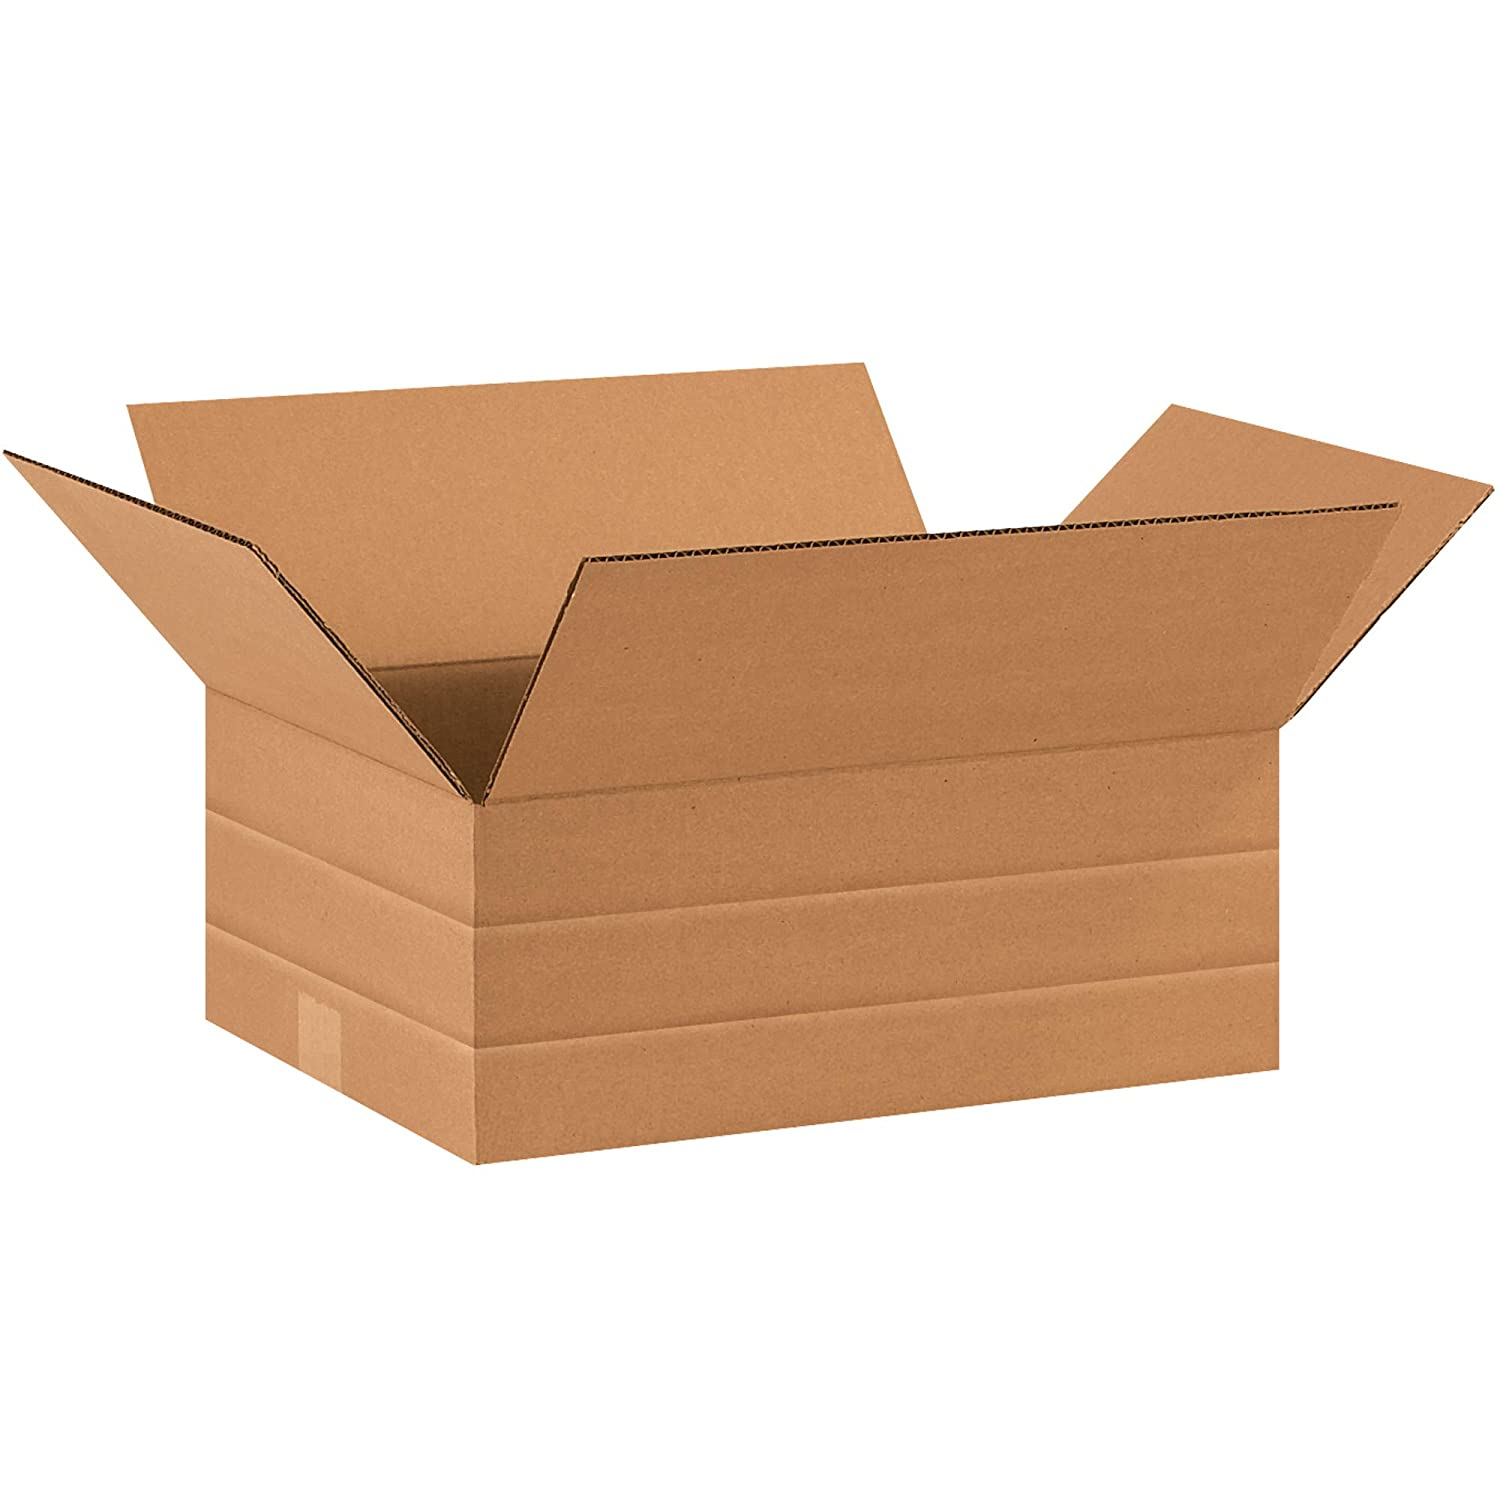 """Aviditi MD16126 Multi-Depth Corrugated Cardboard Box 16"""" L x 12"""" W x 6"""" H, Kraft, for Shipping, Packing and Moving (Pack of 25)"""